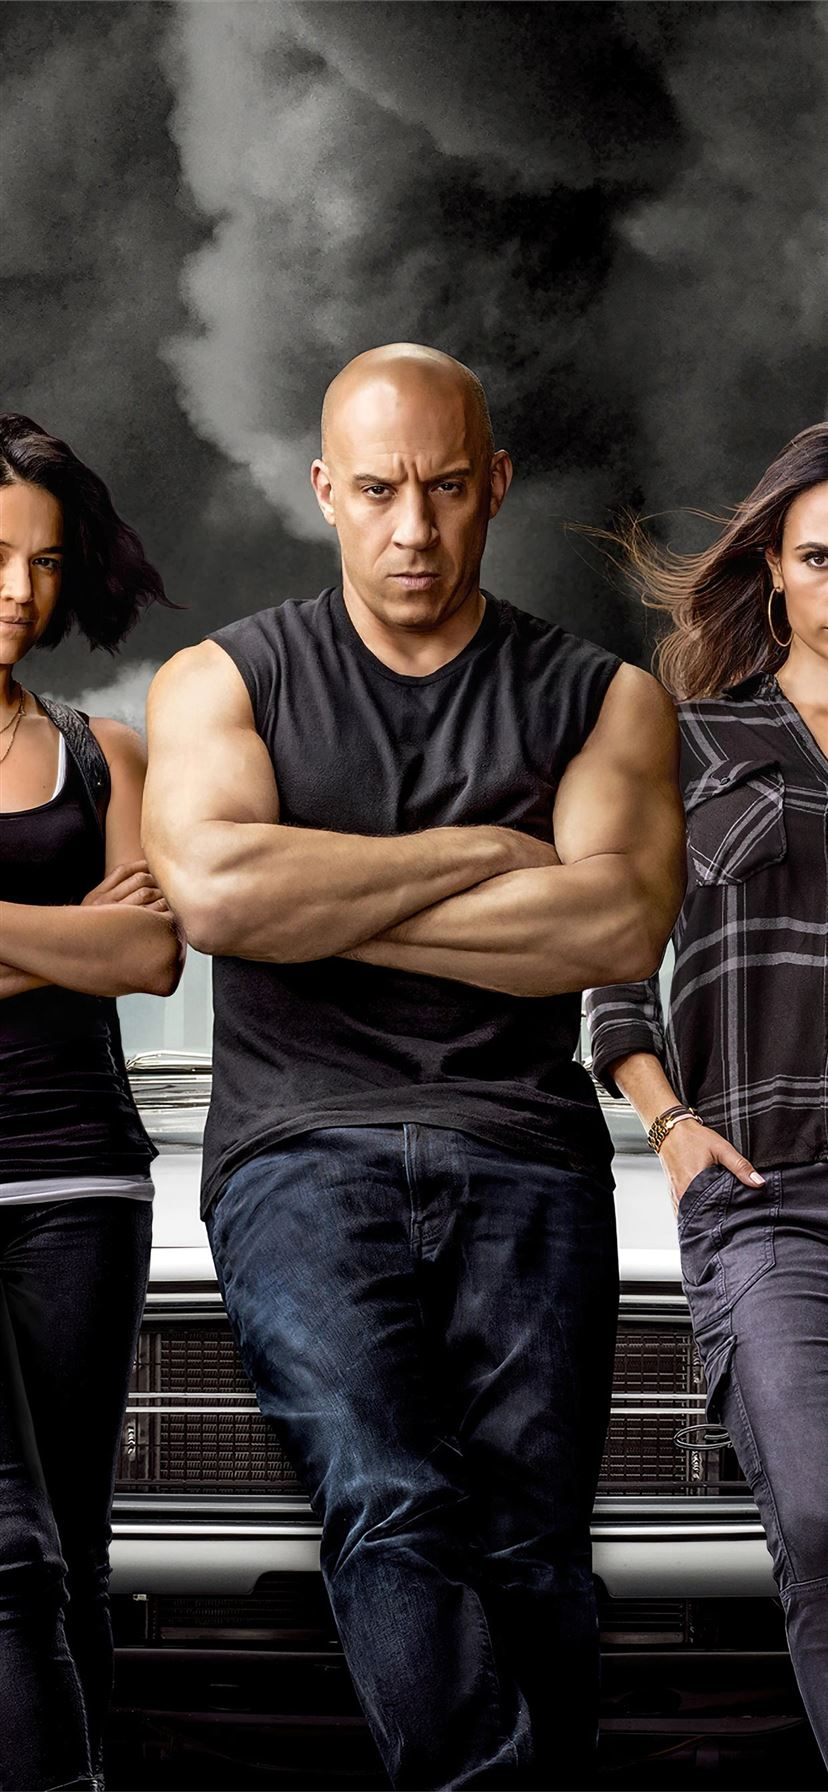 fast and furious 9 the fast saga 2021 iPhone 11 Wallpapers 1125x2436